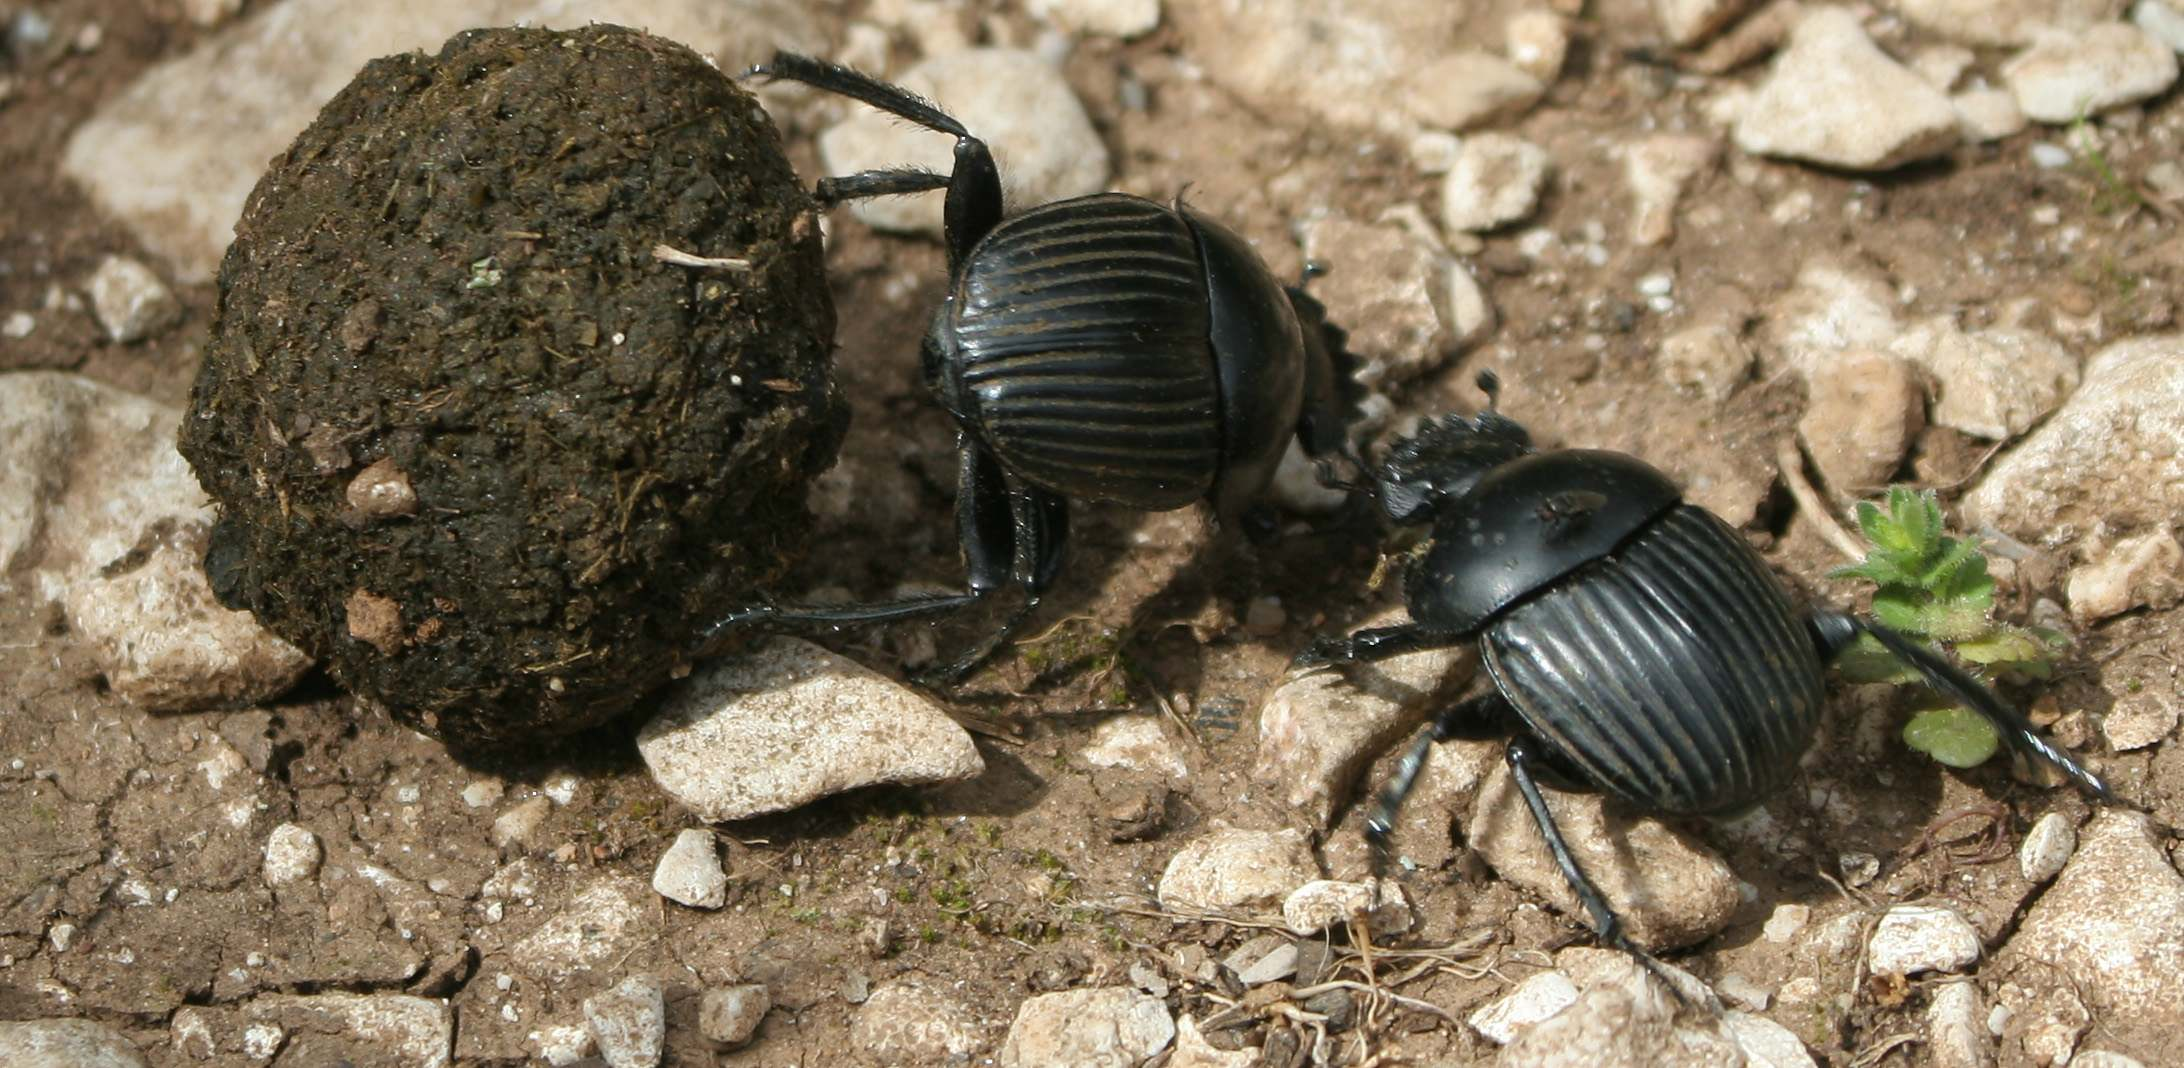 Variegated tropical landscapes conserve diverse dung beetle communities